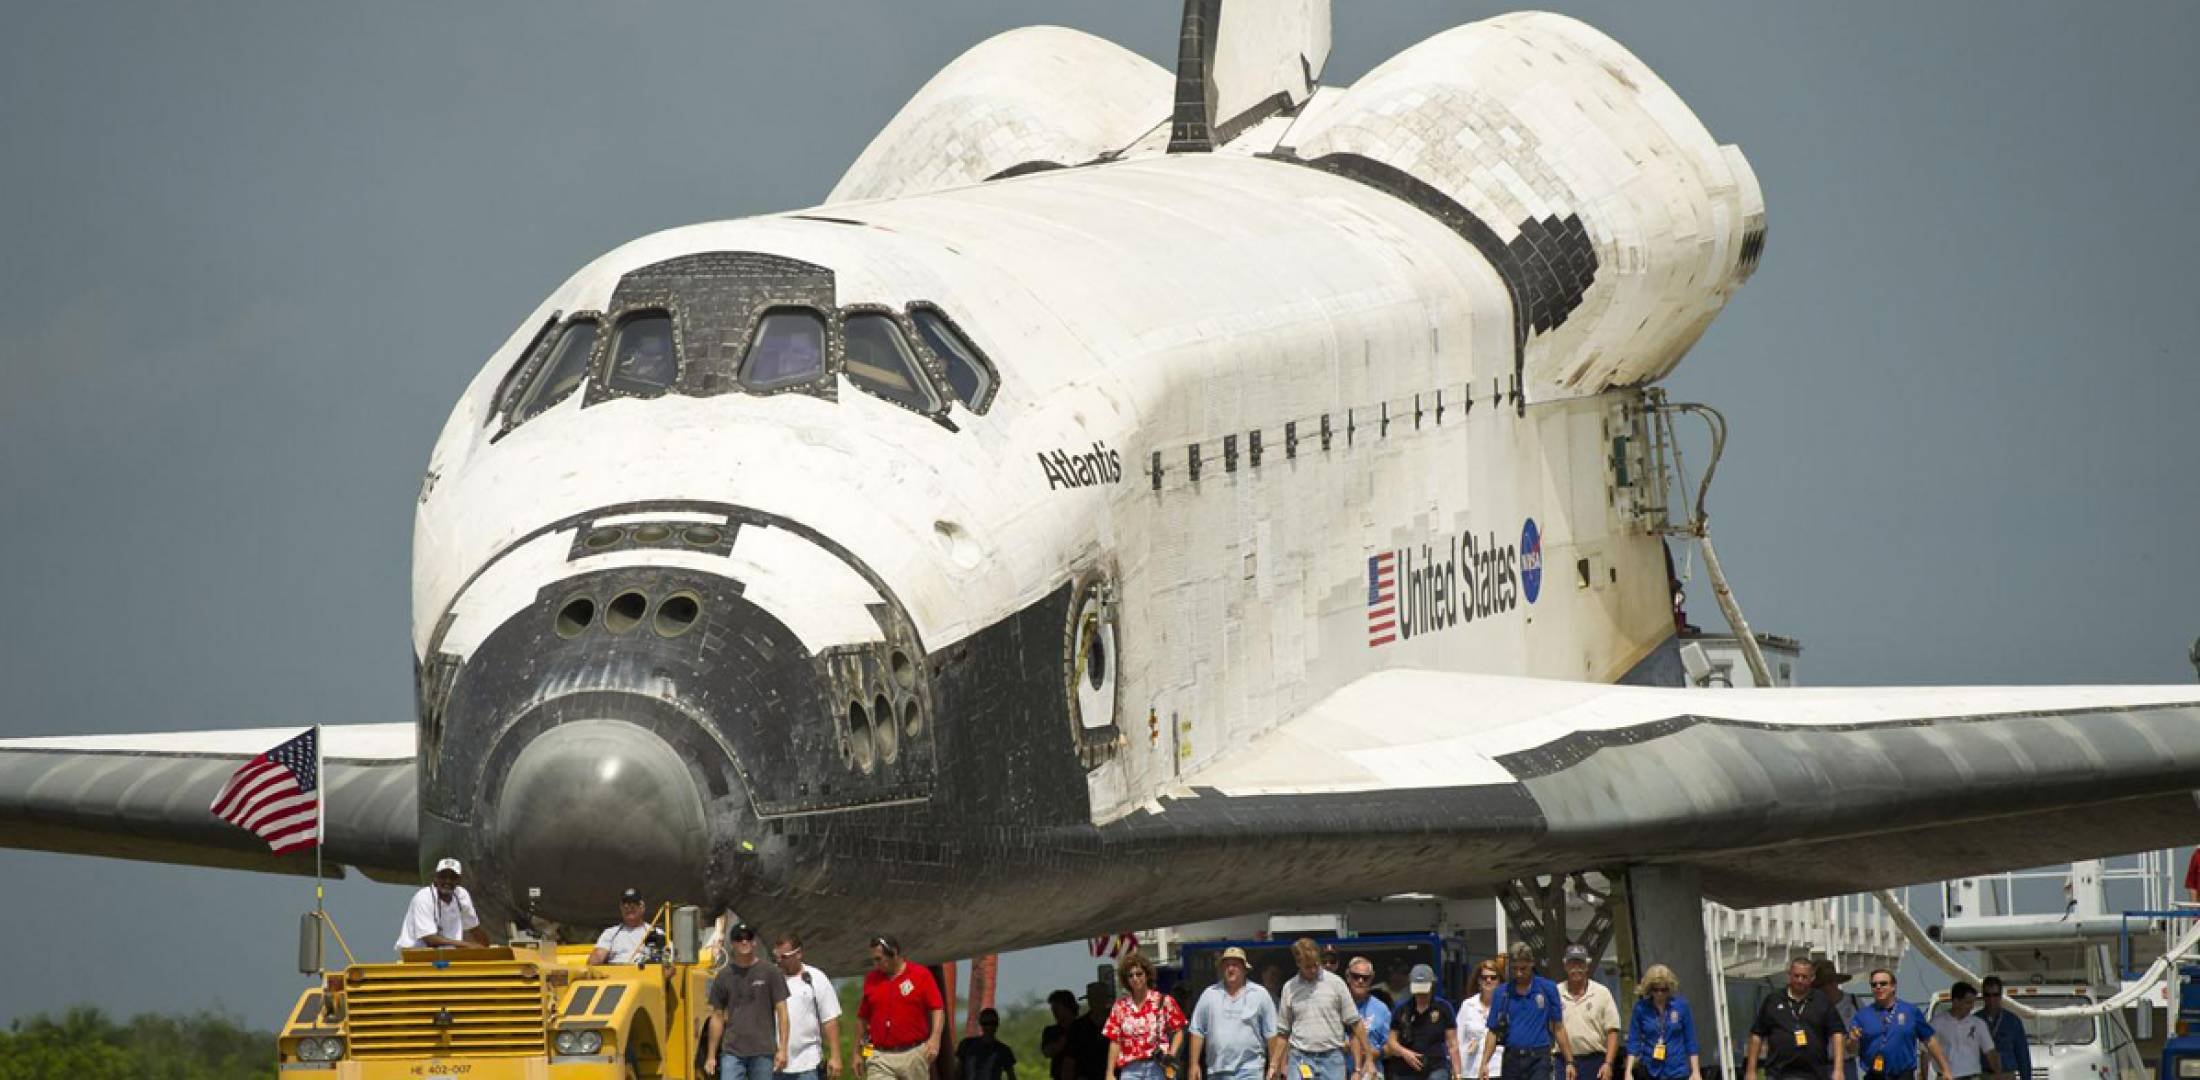 The July 21 landing of the space shuttle Atlantis marked the end of a 30-year...